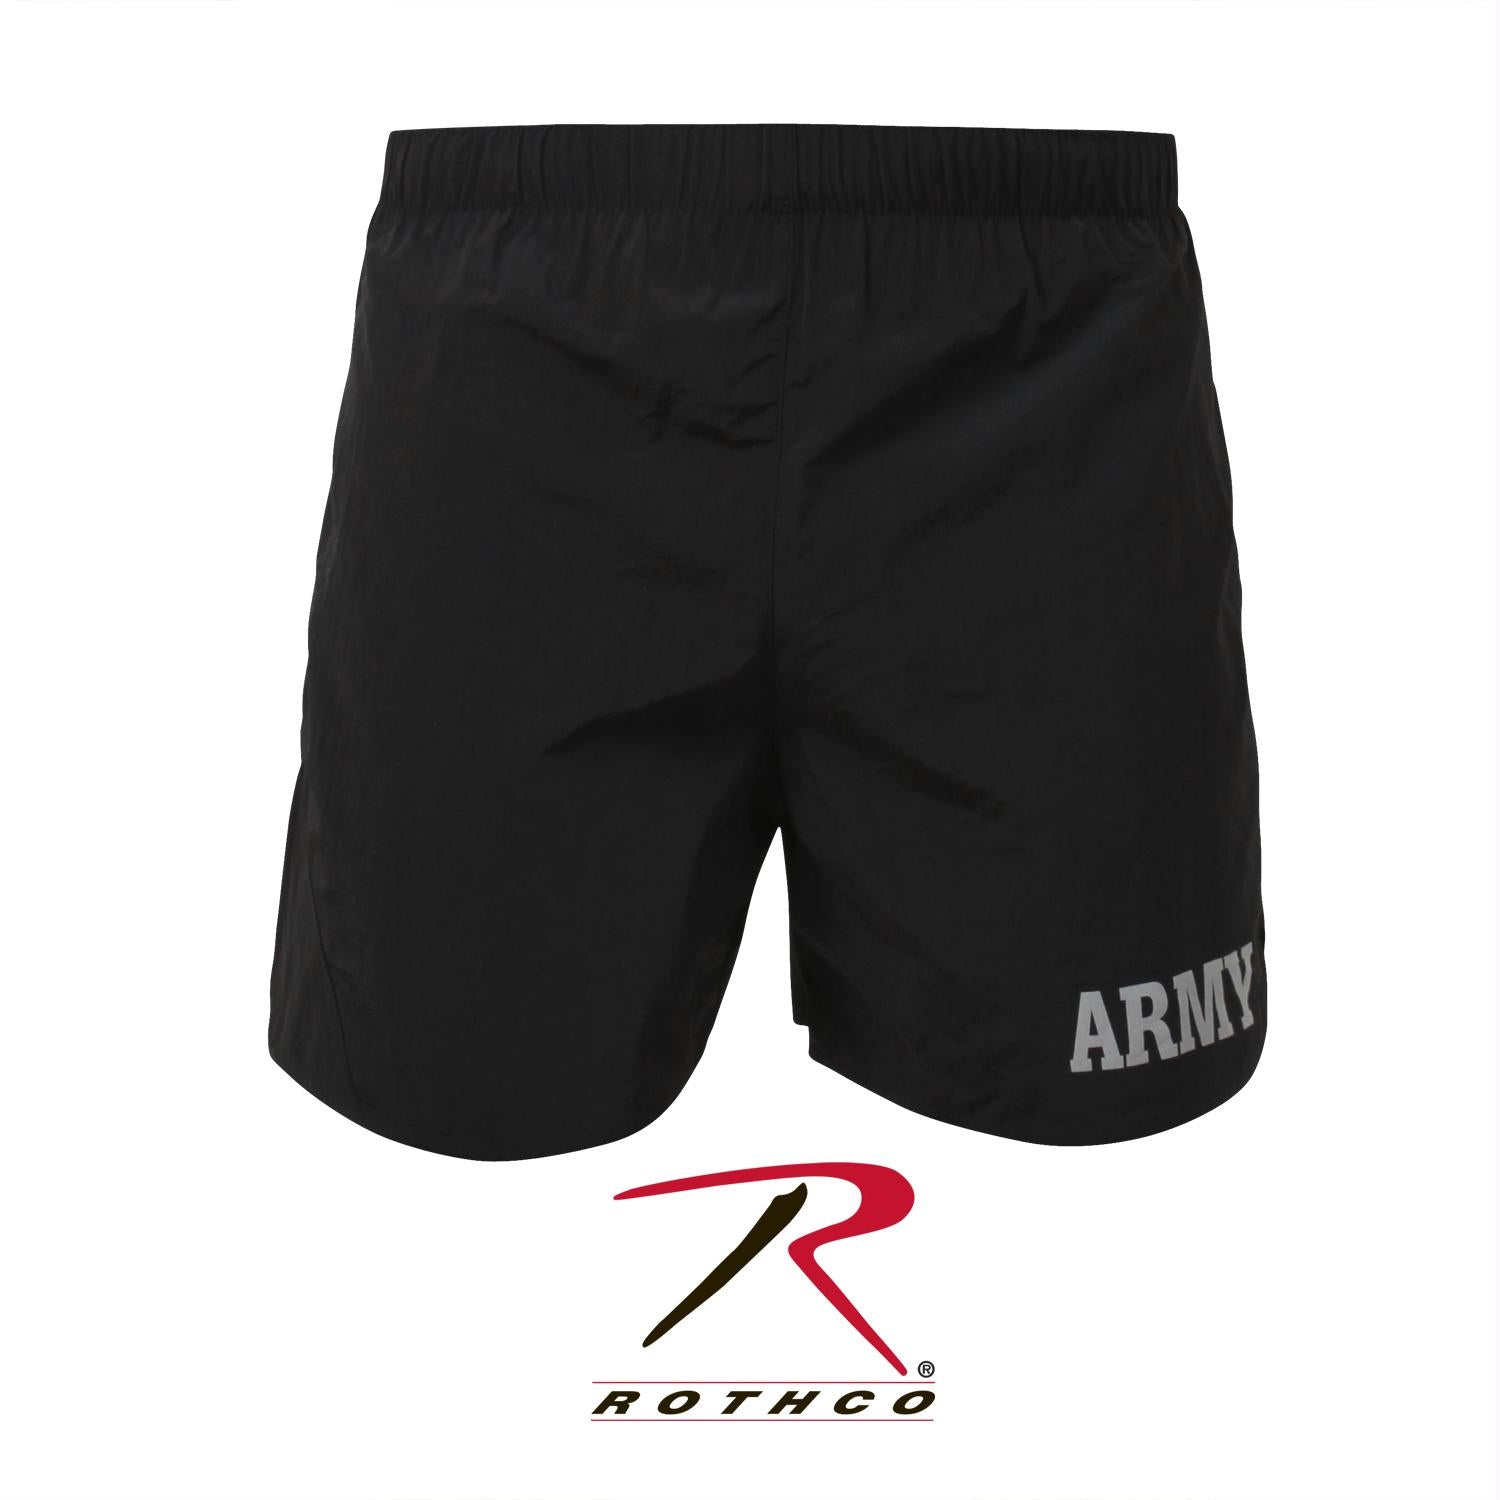 Rothco Physical Training  Shorts